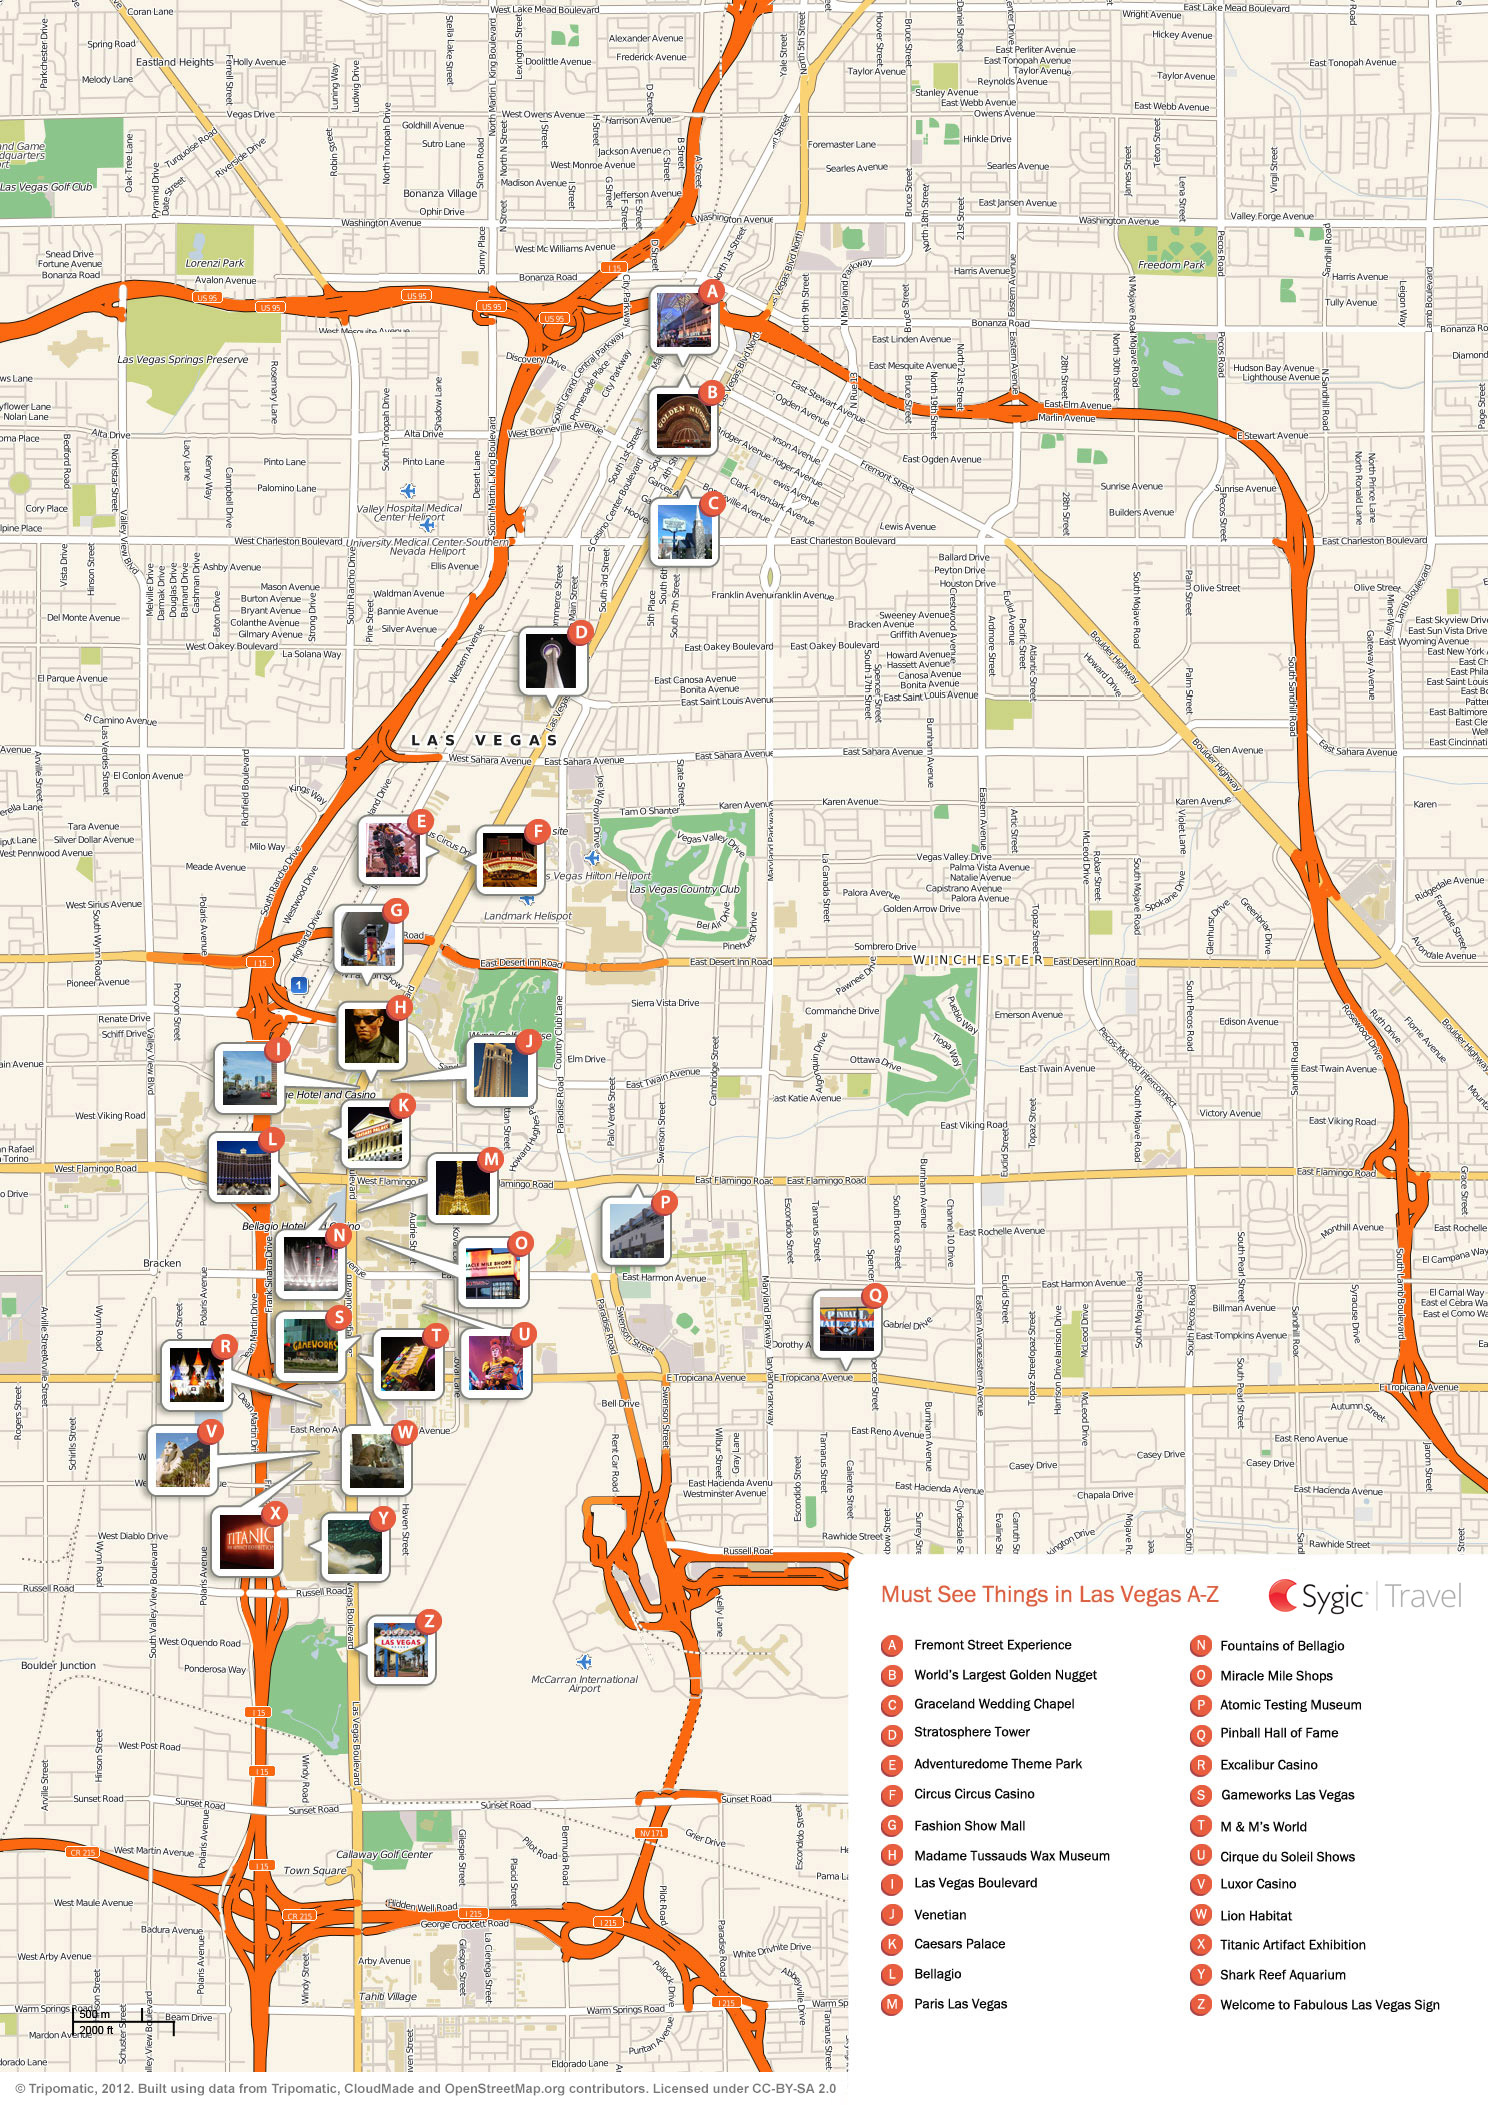 Las Vegas Printable Tourist Map – Paris Tourist Attractions Map